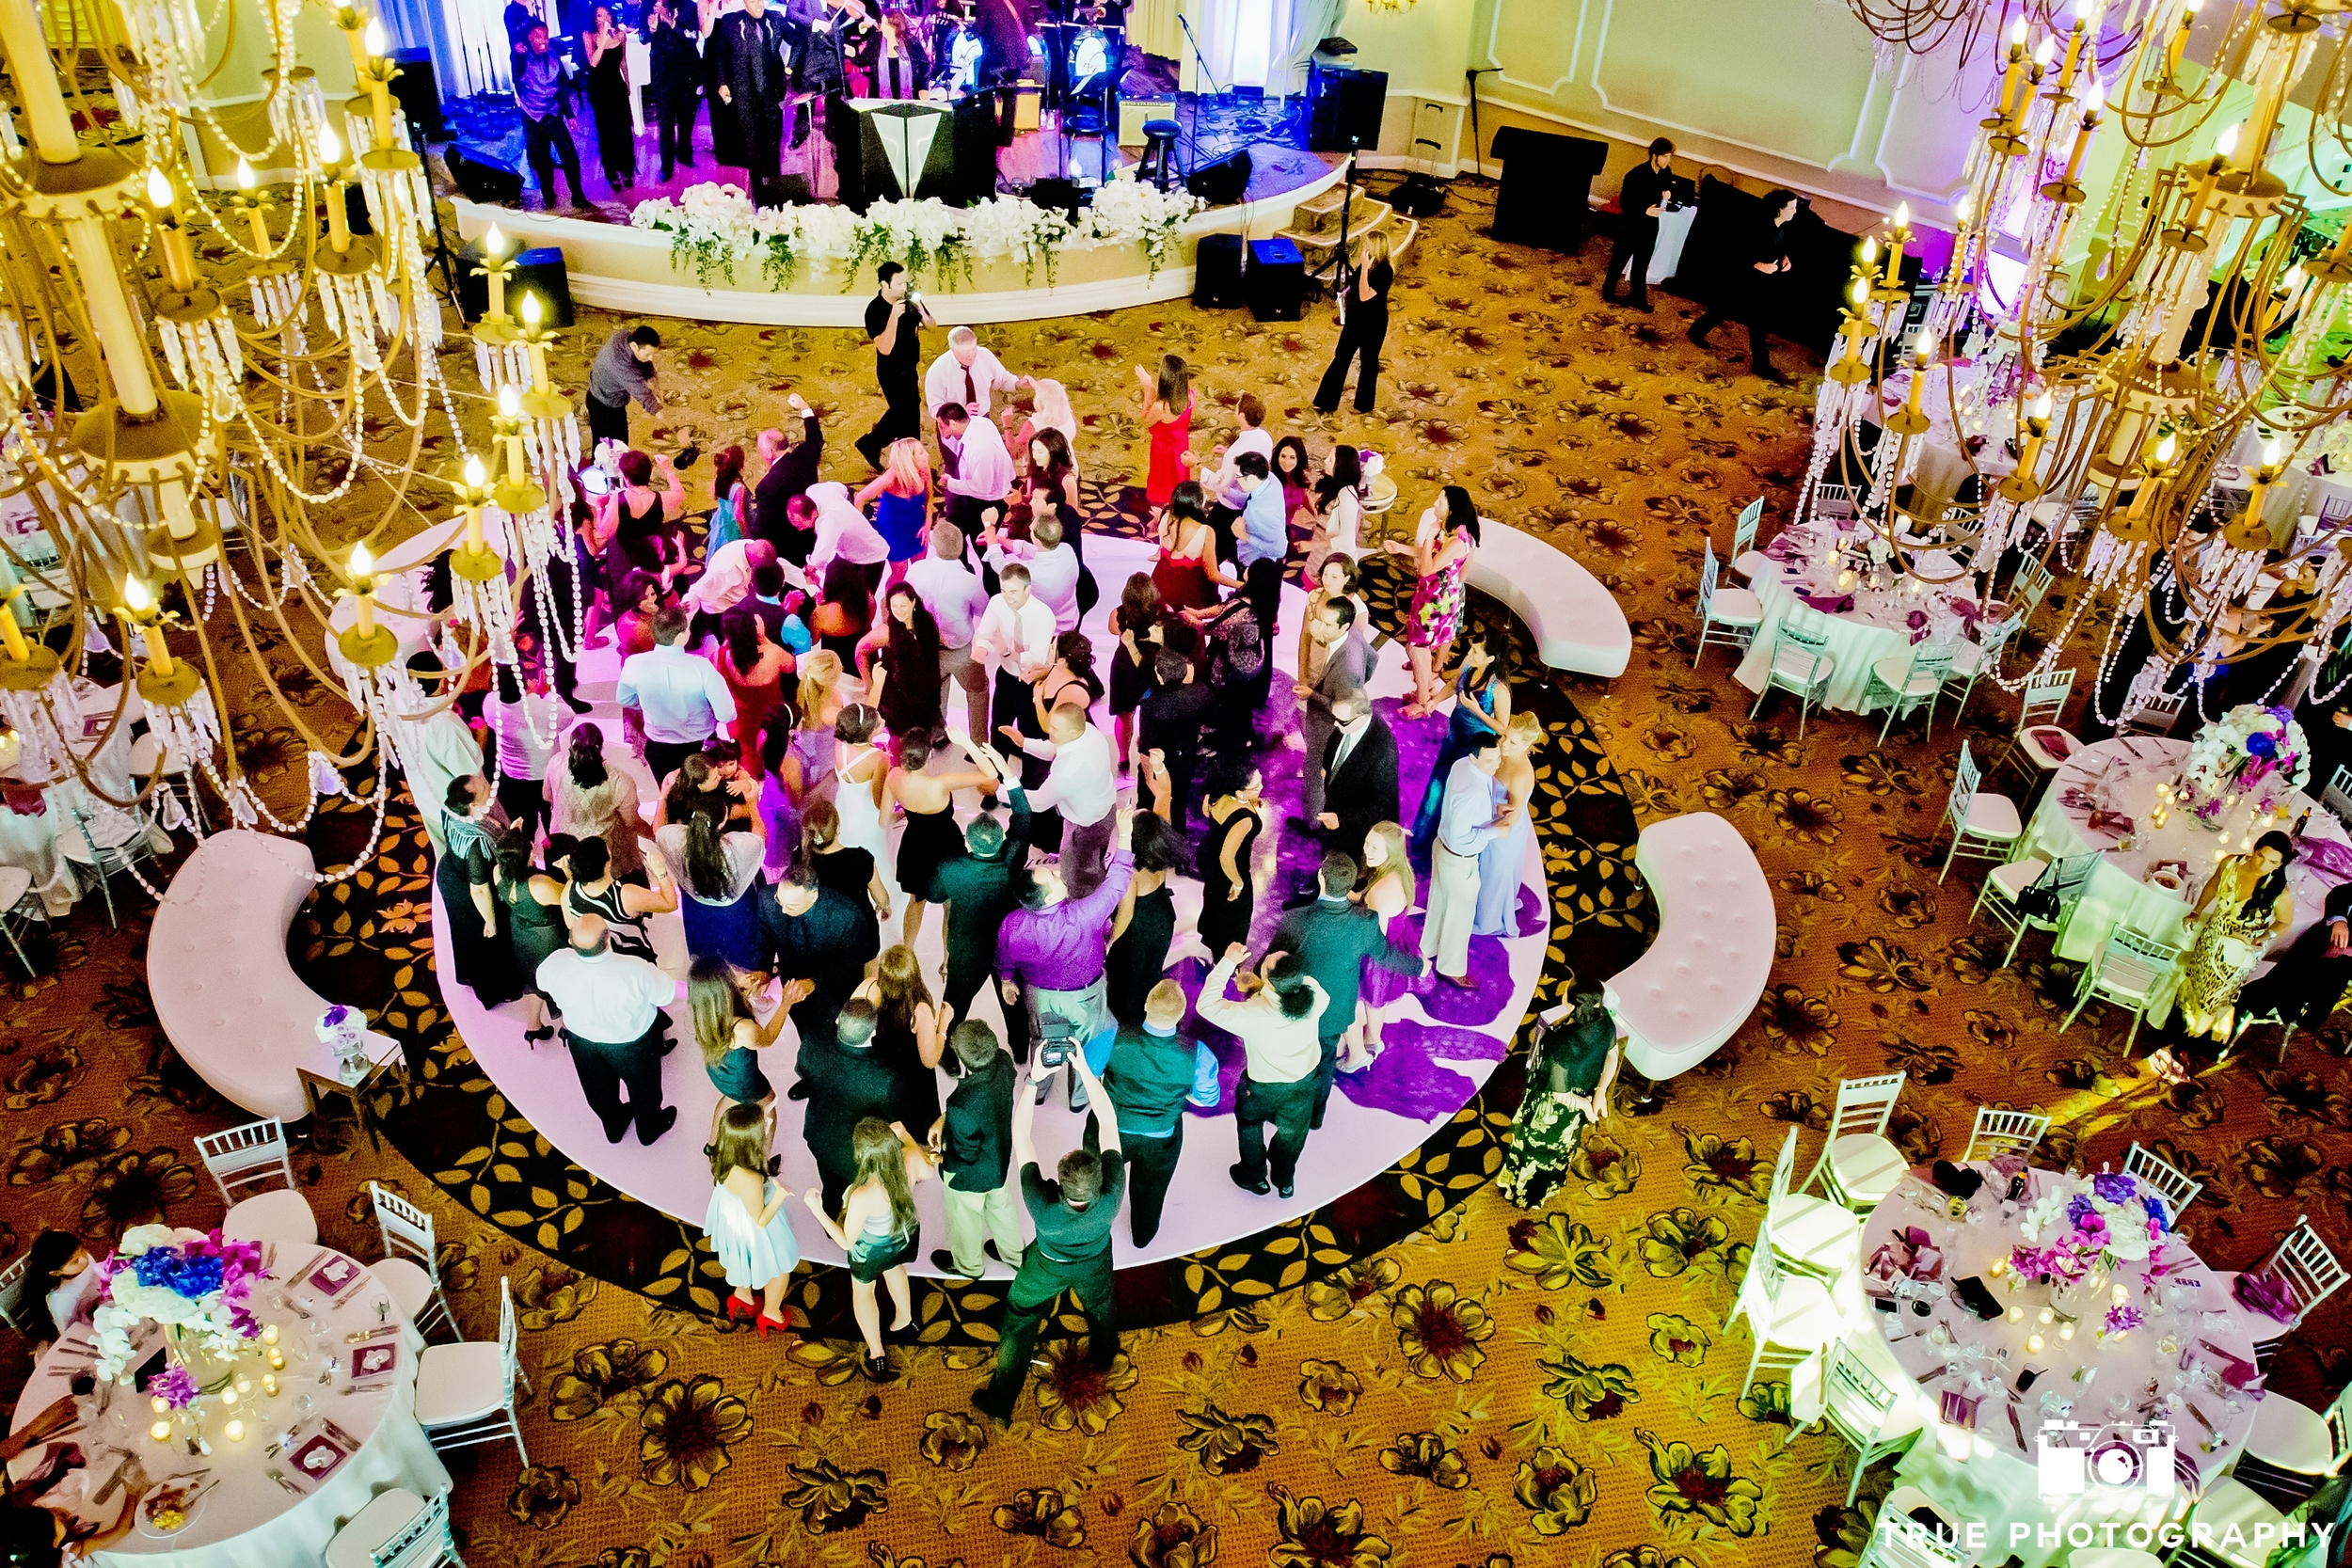 The size of the dance floor plays an important role in how the energy level will sustain during the wedding reception.